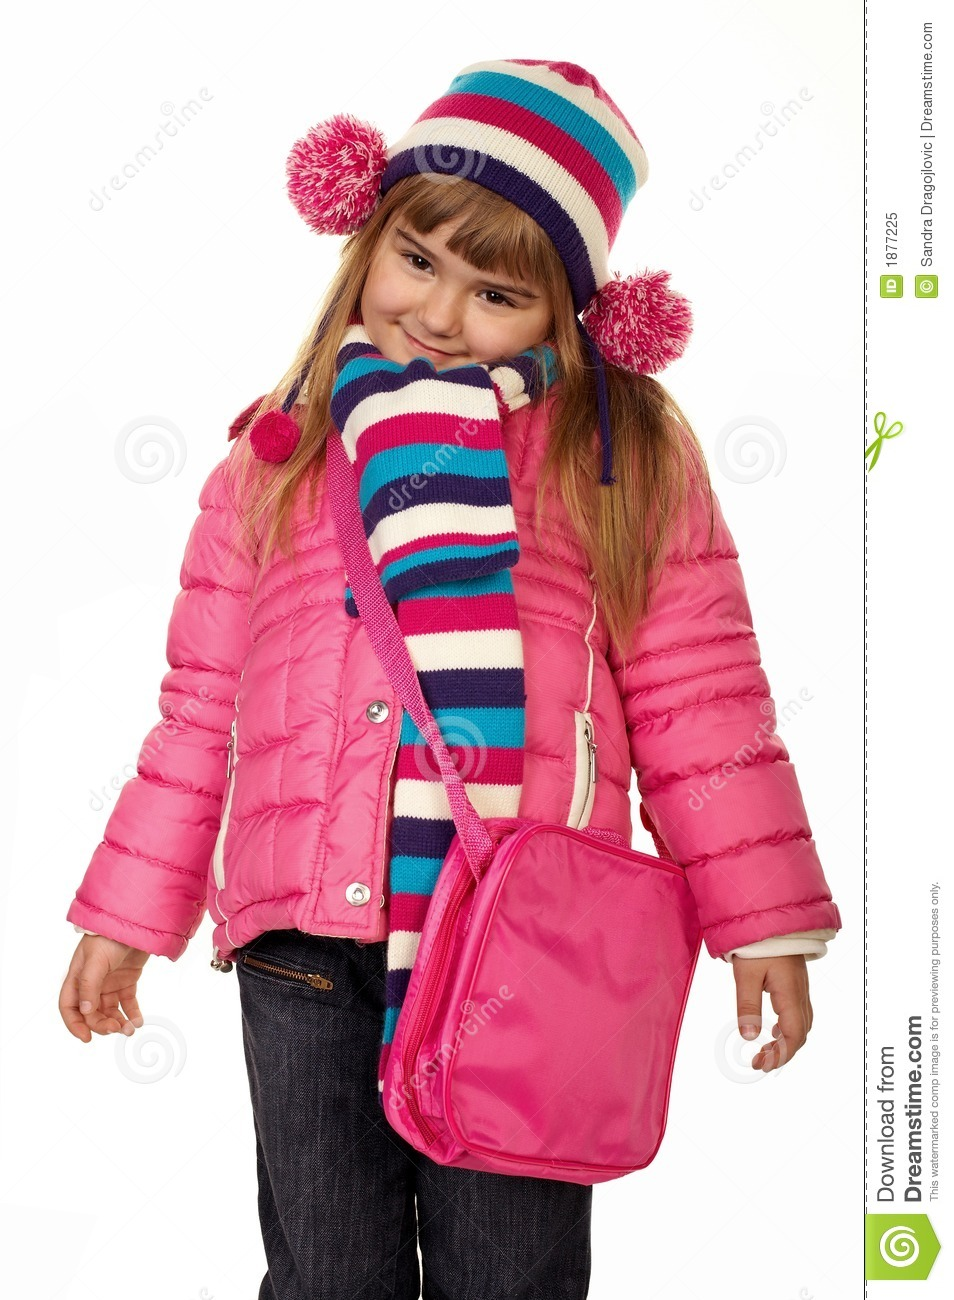 05b655066 Adorable Little Girl In Winter Clothes Stock Image - Image of ...